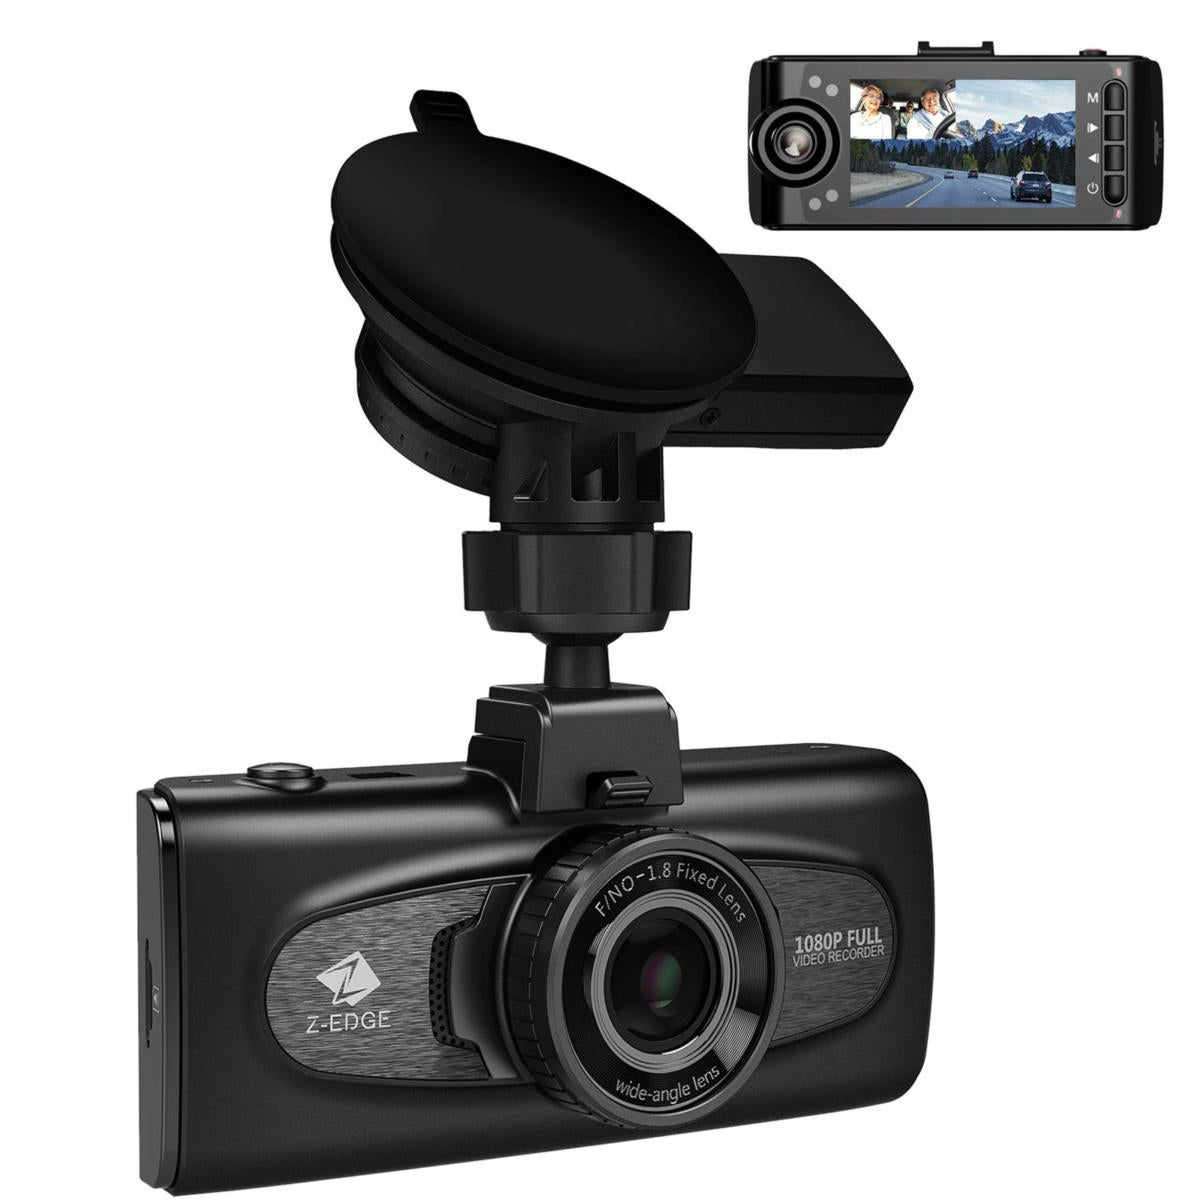 Z-Edge F1 dash cam: Great image quality and versatile GPS outweigh